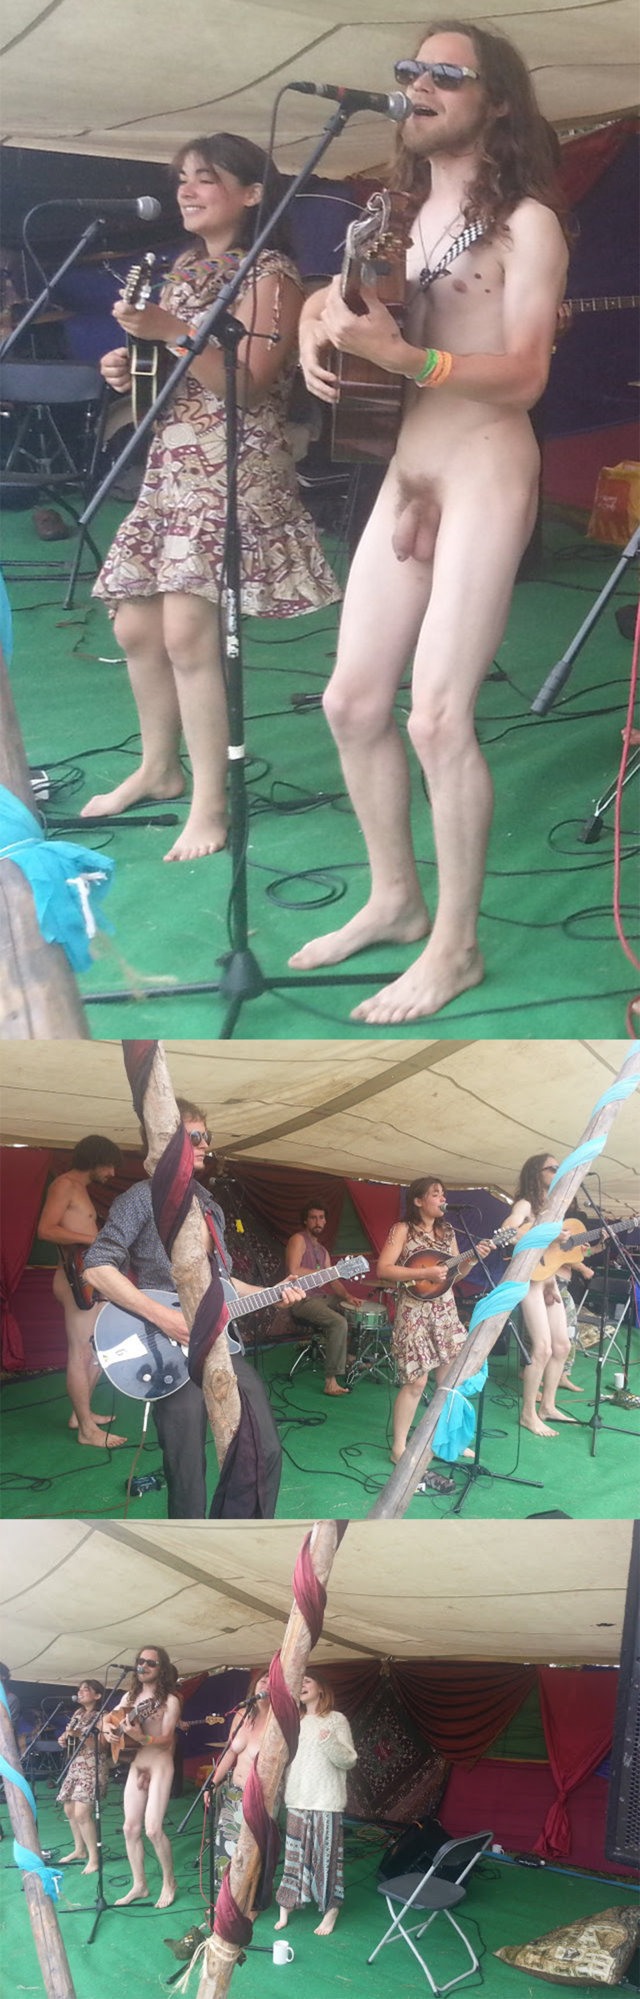 naked band on stage